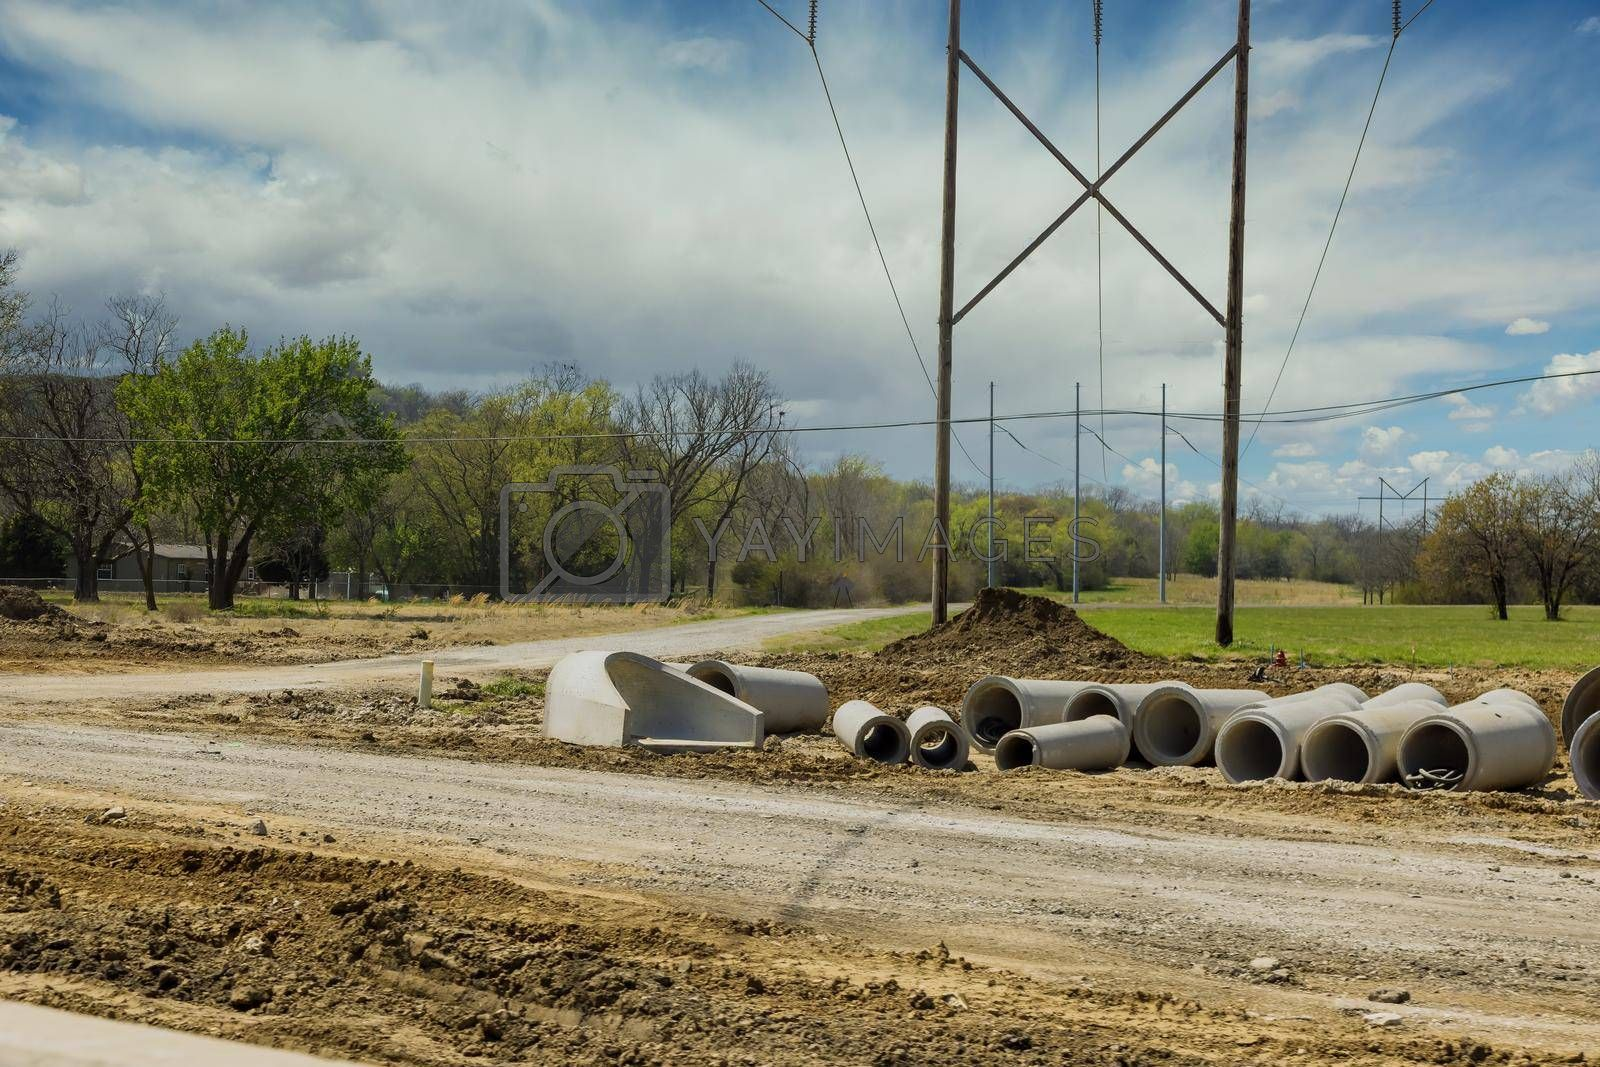 Main road drainage system under construction on concrete manholes are installed at constructed for draining stormwater